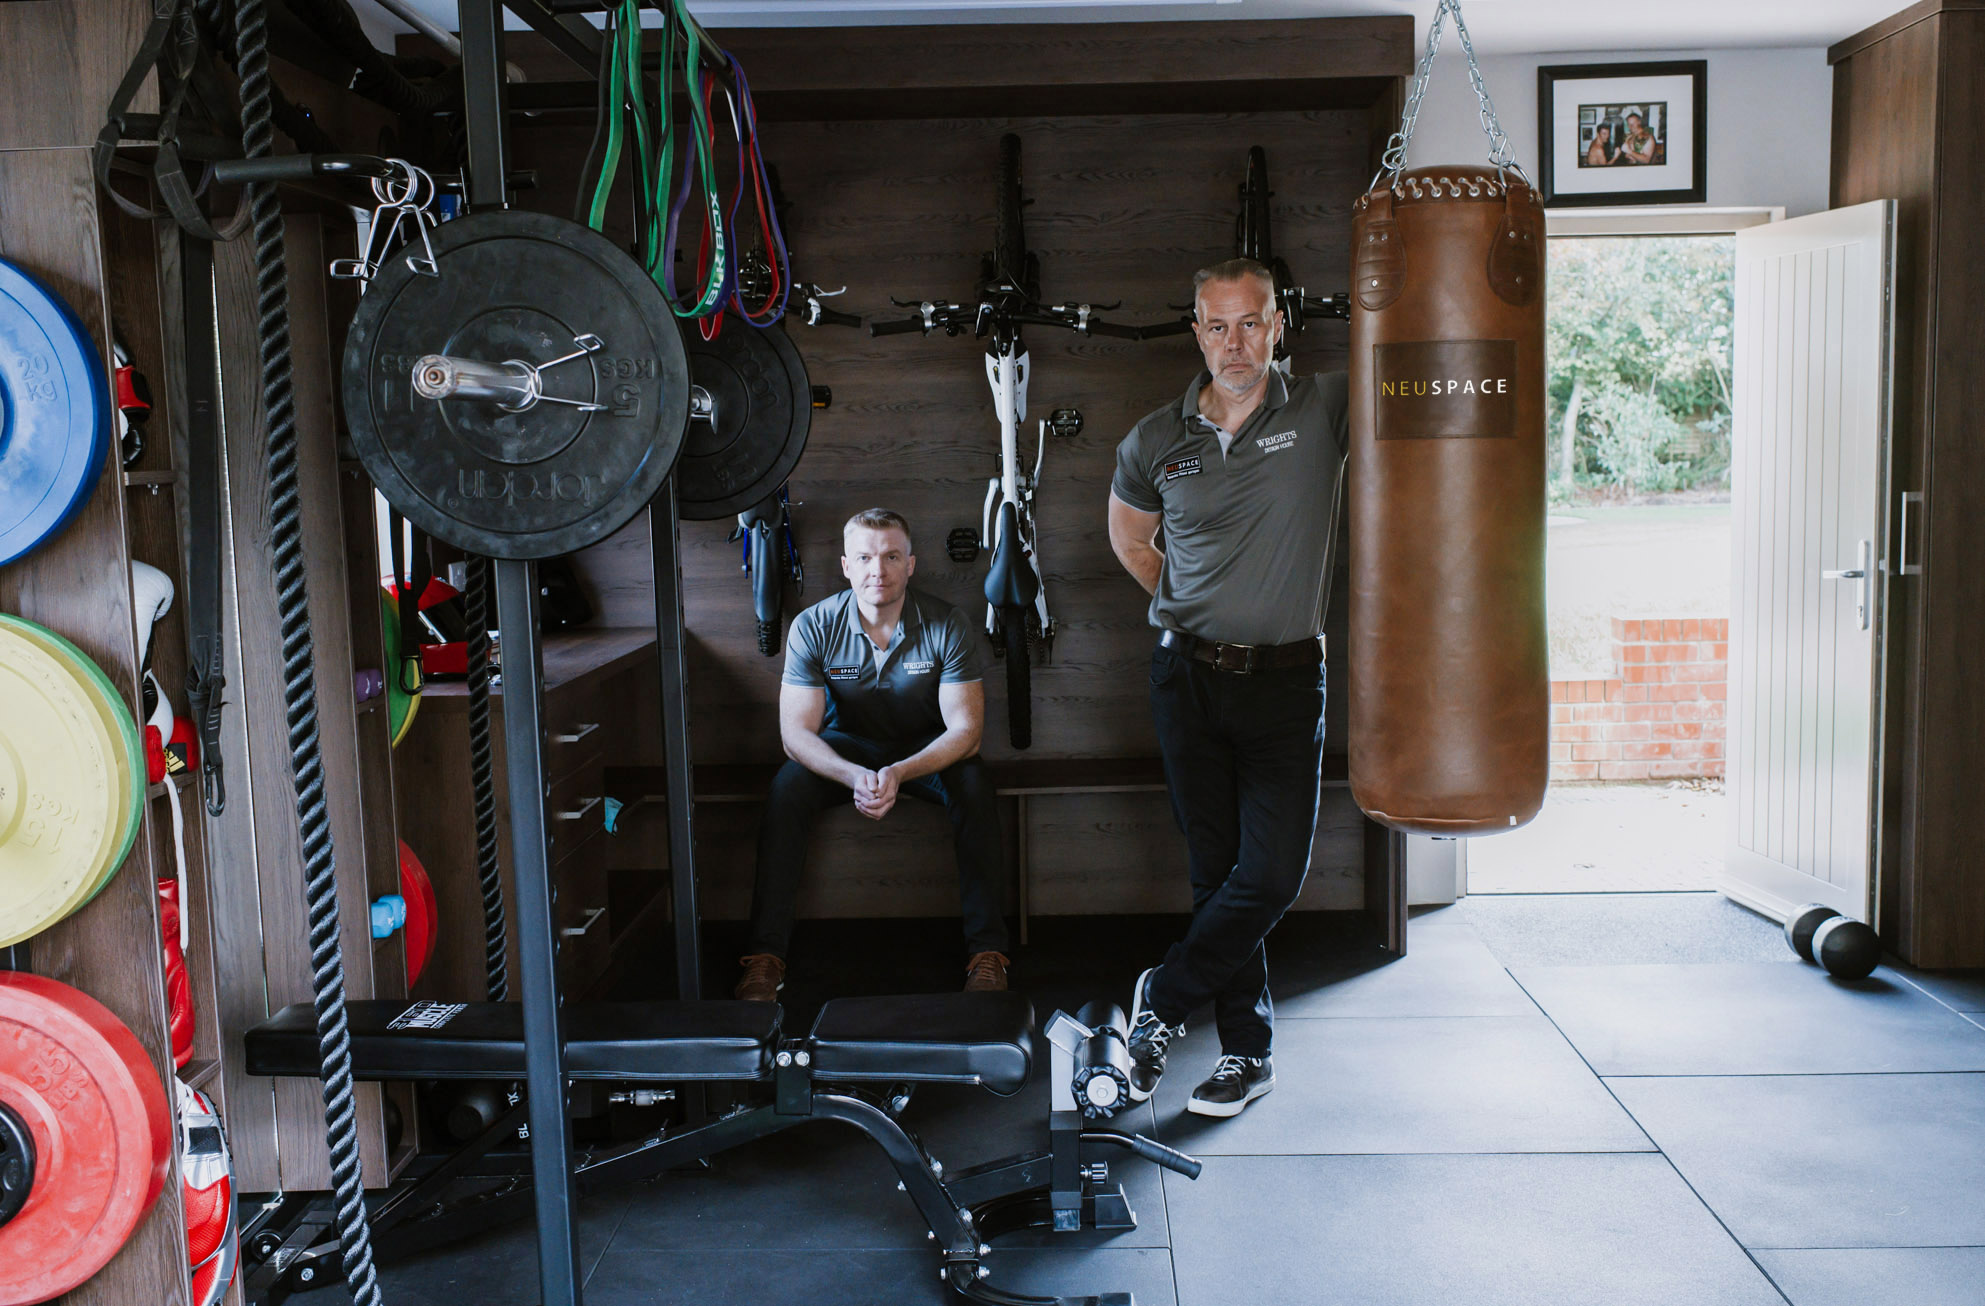 TIME IS NEU TO TRANSFORM YOUR GARAGE: Glen Wright (left) and Darryl Sloan are on a mission to abolish wasted garage space following the launch of NeuSpace, a new Northern Irish company specialising in bespoke high-end garage transformations. The fit-out firm specialises in transforming a typical garage into the ultimate multi-functional recreational area, from a stylish purpose-built gym or office, to a children's play area or pool room with full bar facilities. The idea for NeuSpace, which takes its name from the German word for 'new' (pronounced 'now'), spawned from a 'meeting of minds' between company directors Sloan, one of the province's leading fitness coaches, and Wright, a director with award-winning kitchen and furniture designer Wright's Design House. For more information or to arrange a free consultation, visit www.neuspaceni.com, call 028 9246 0047 or email info@neuspaceni.com.